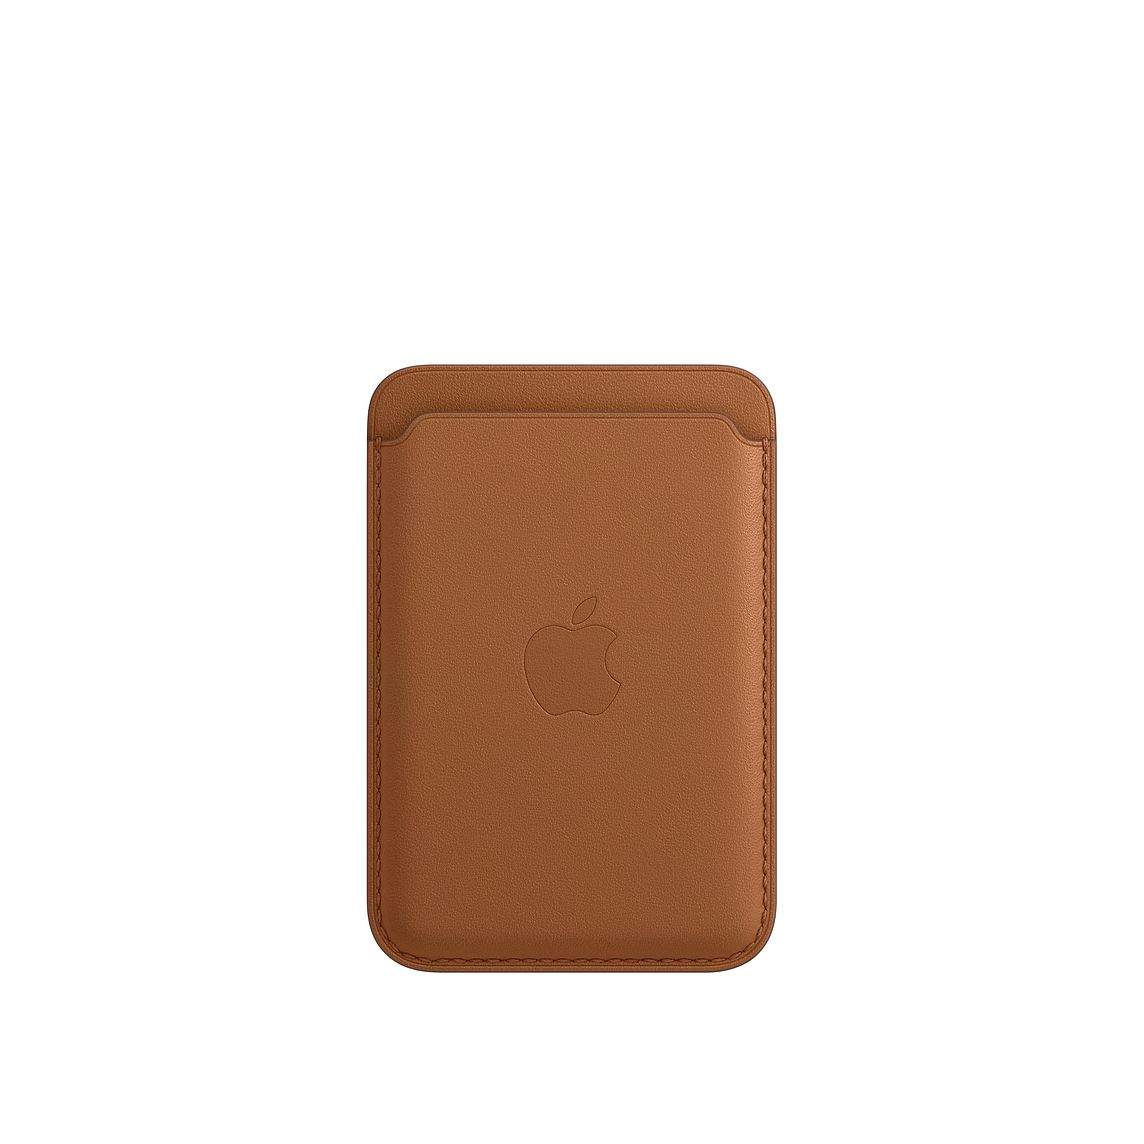 Apple iPhone Leather Wallet with MagSafe Black